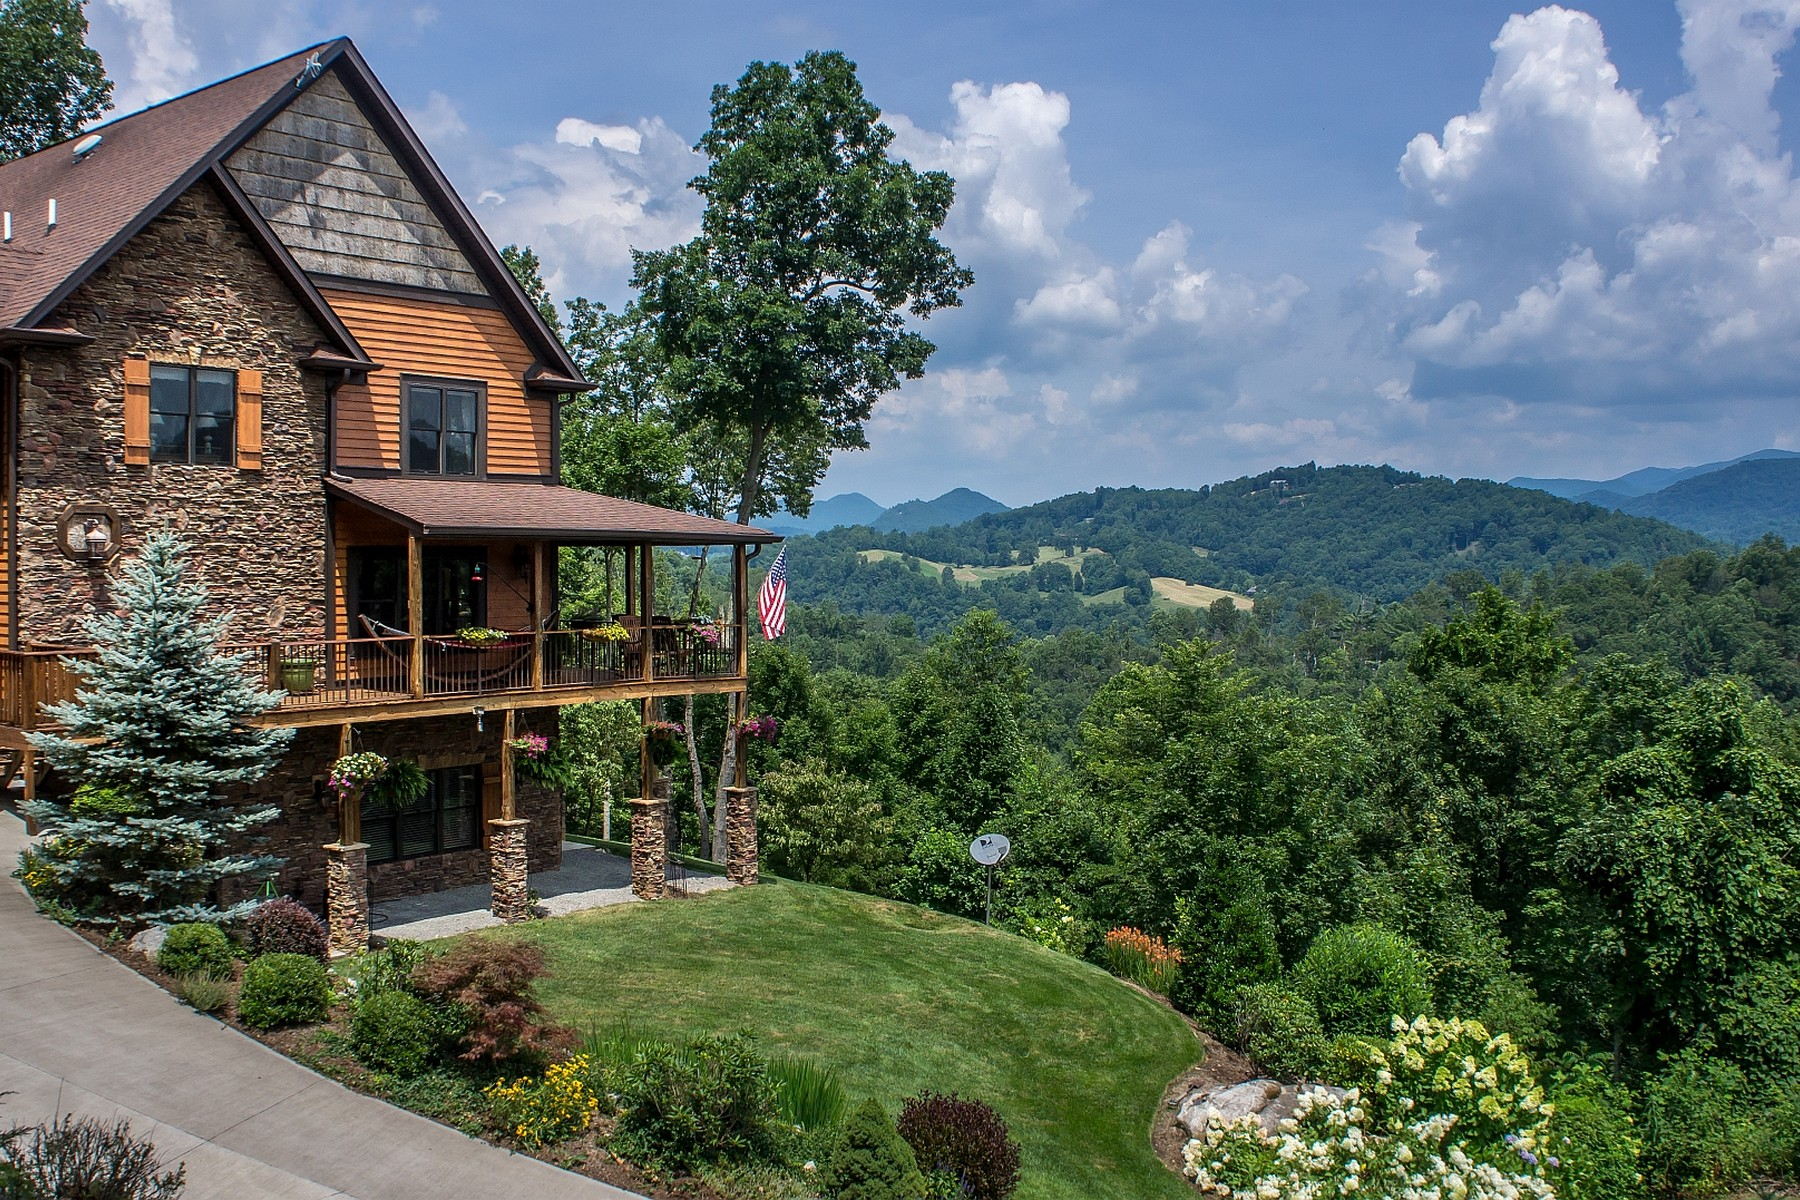 Single Family Home for Sale at Spectacular Mountain Chalet 710 Gordon Ridge Road, Butler, Tennessee 37640 United States